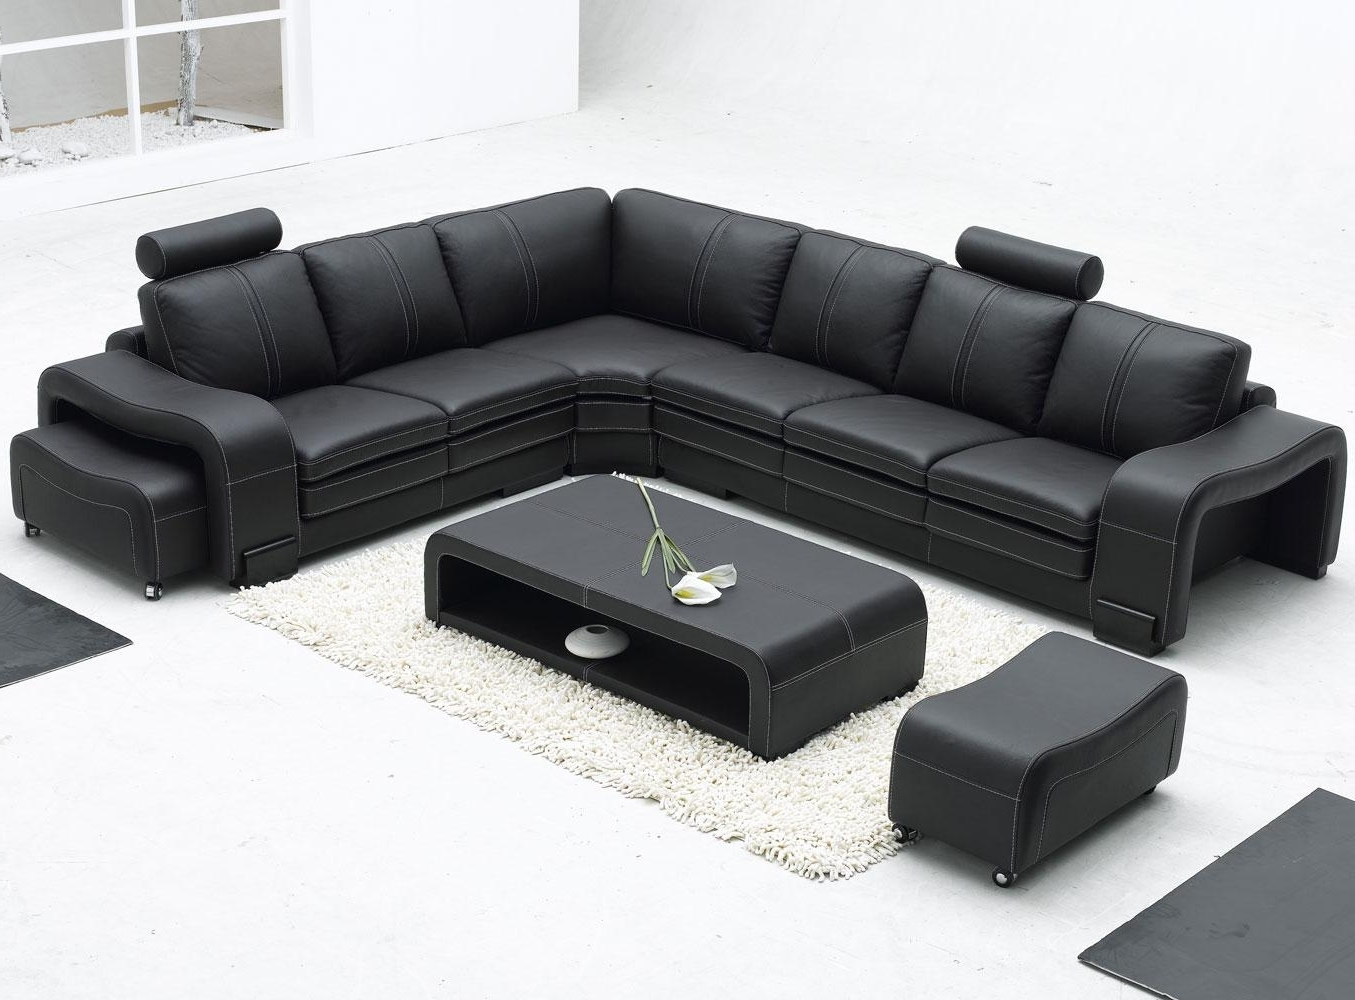 Leather L Shaped Sectional Sofas Intended For Latest Sofa : Sofa And Chair Contemporary Leather Sectional With Recliner (View 9 of 20)